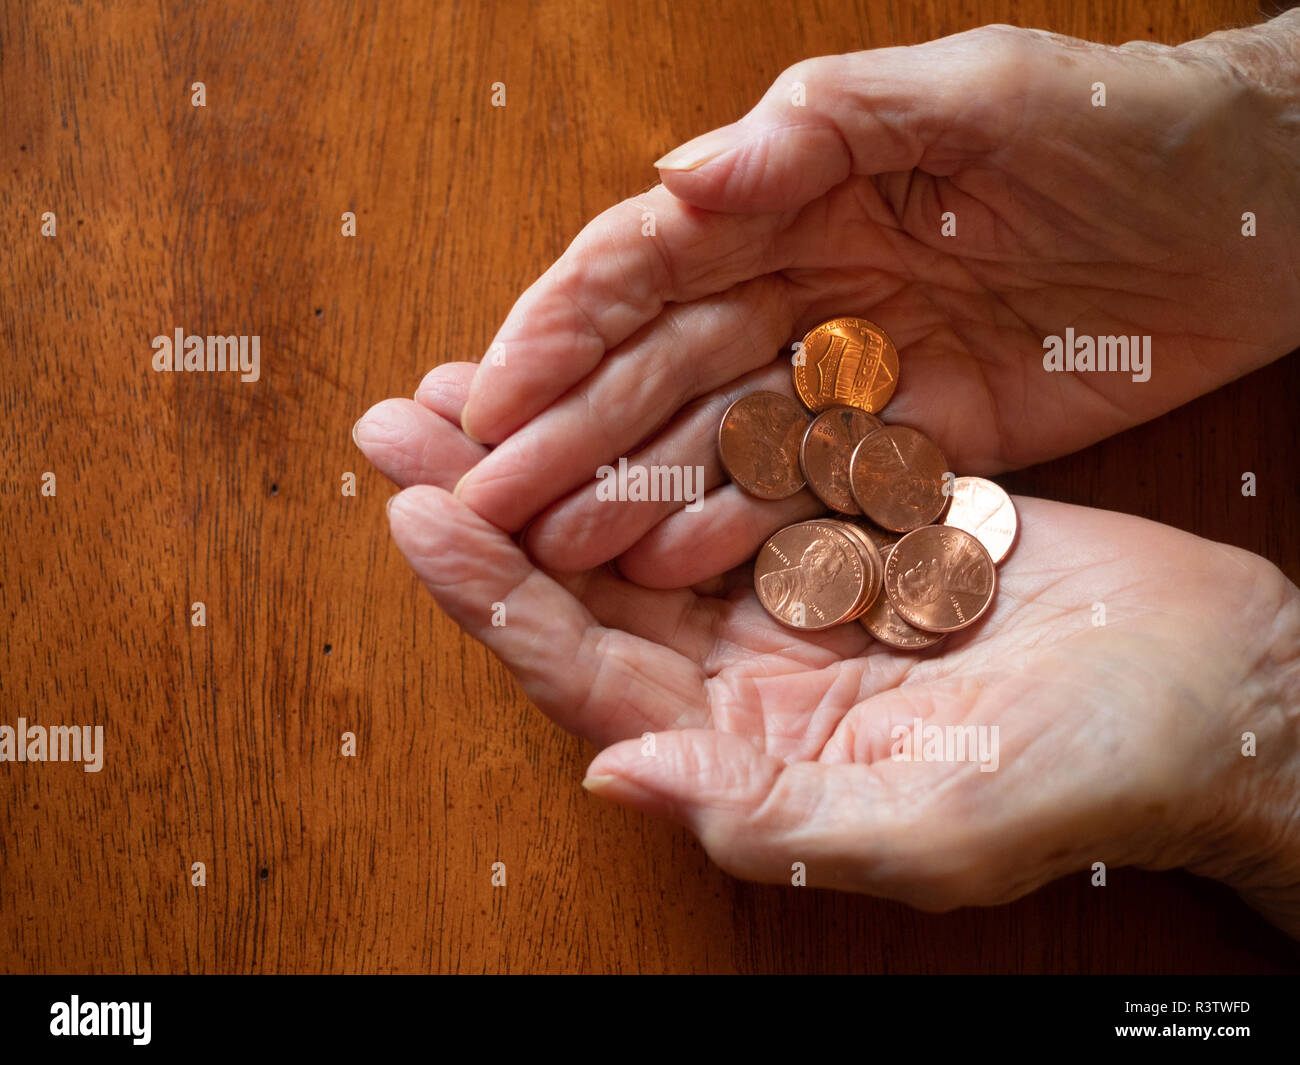 Close up of elderly woman's hands holding pennies. Photographed from above with a wooden table in the background and copy space. - Stock Image